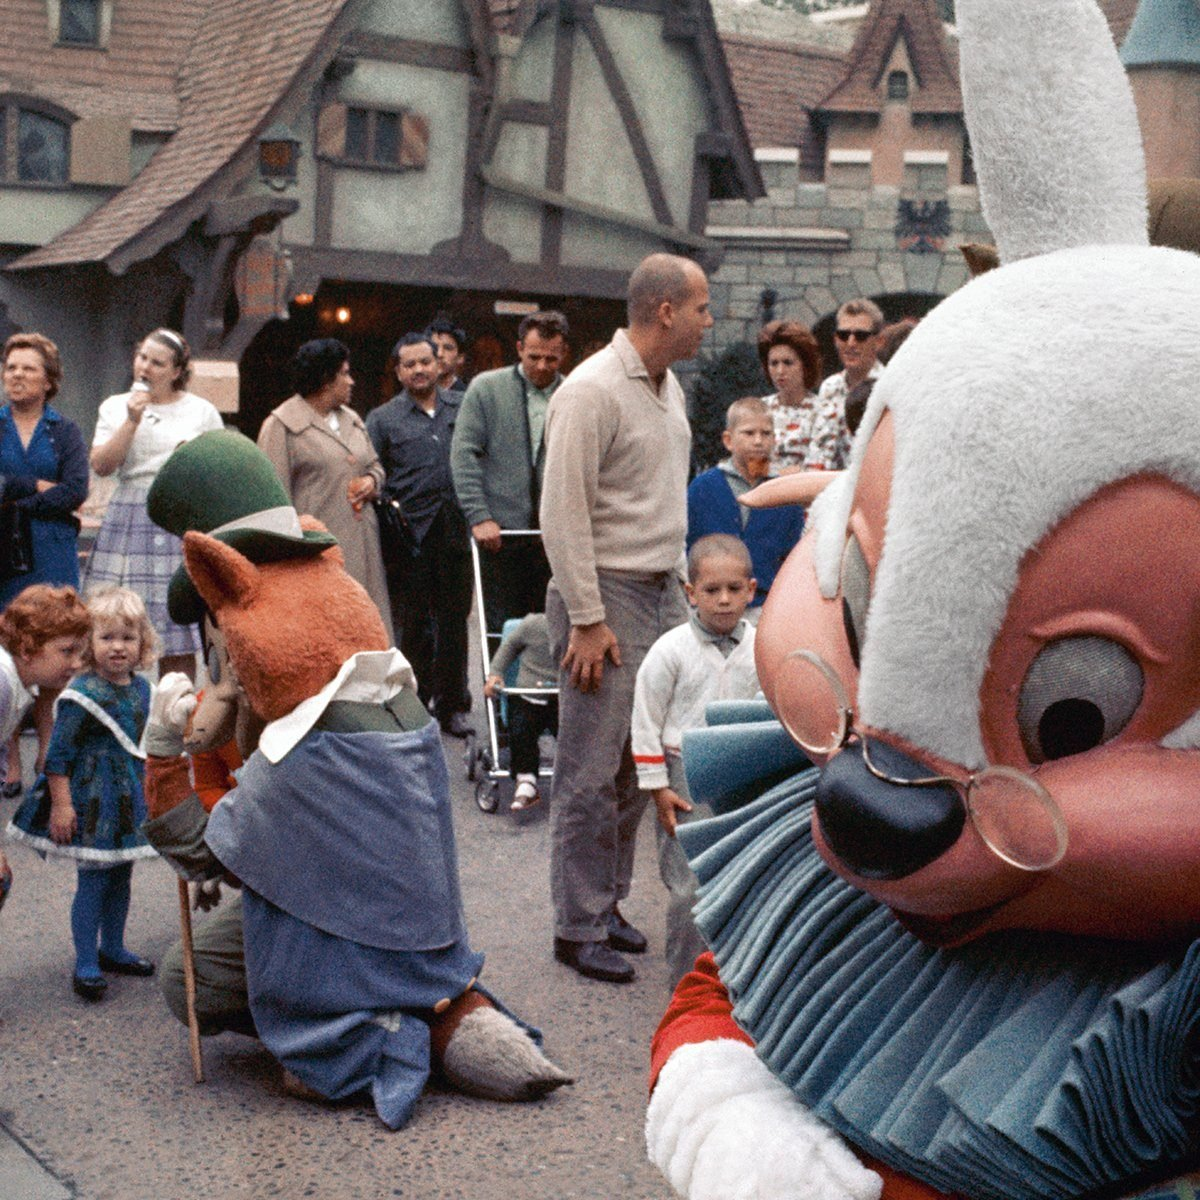 ANAHEIM, CA - 1963: Disney characters entertain children in the Fantasyland area of Disneyland in1963 in Anaheim, California. (Photo by David Attie/Getty Images)